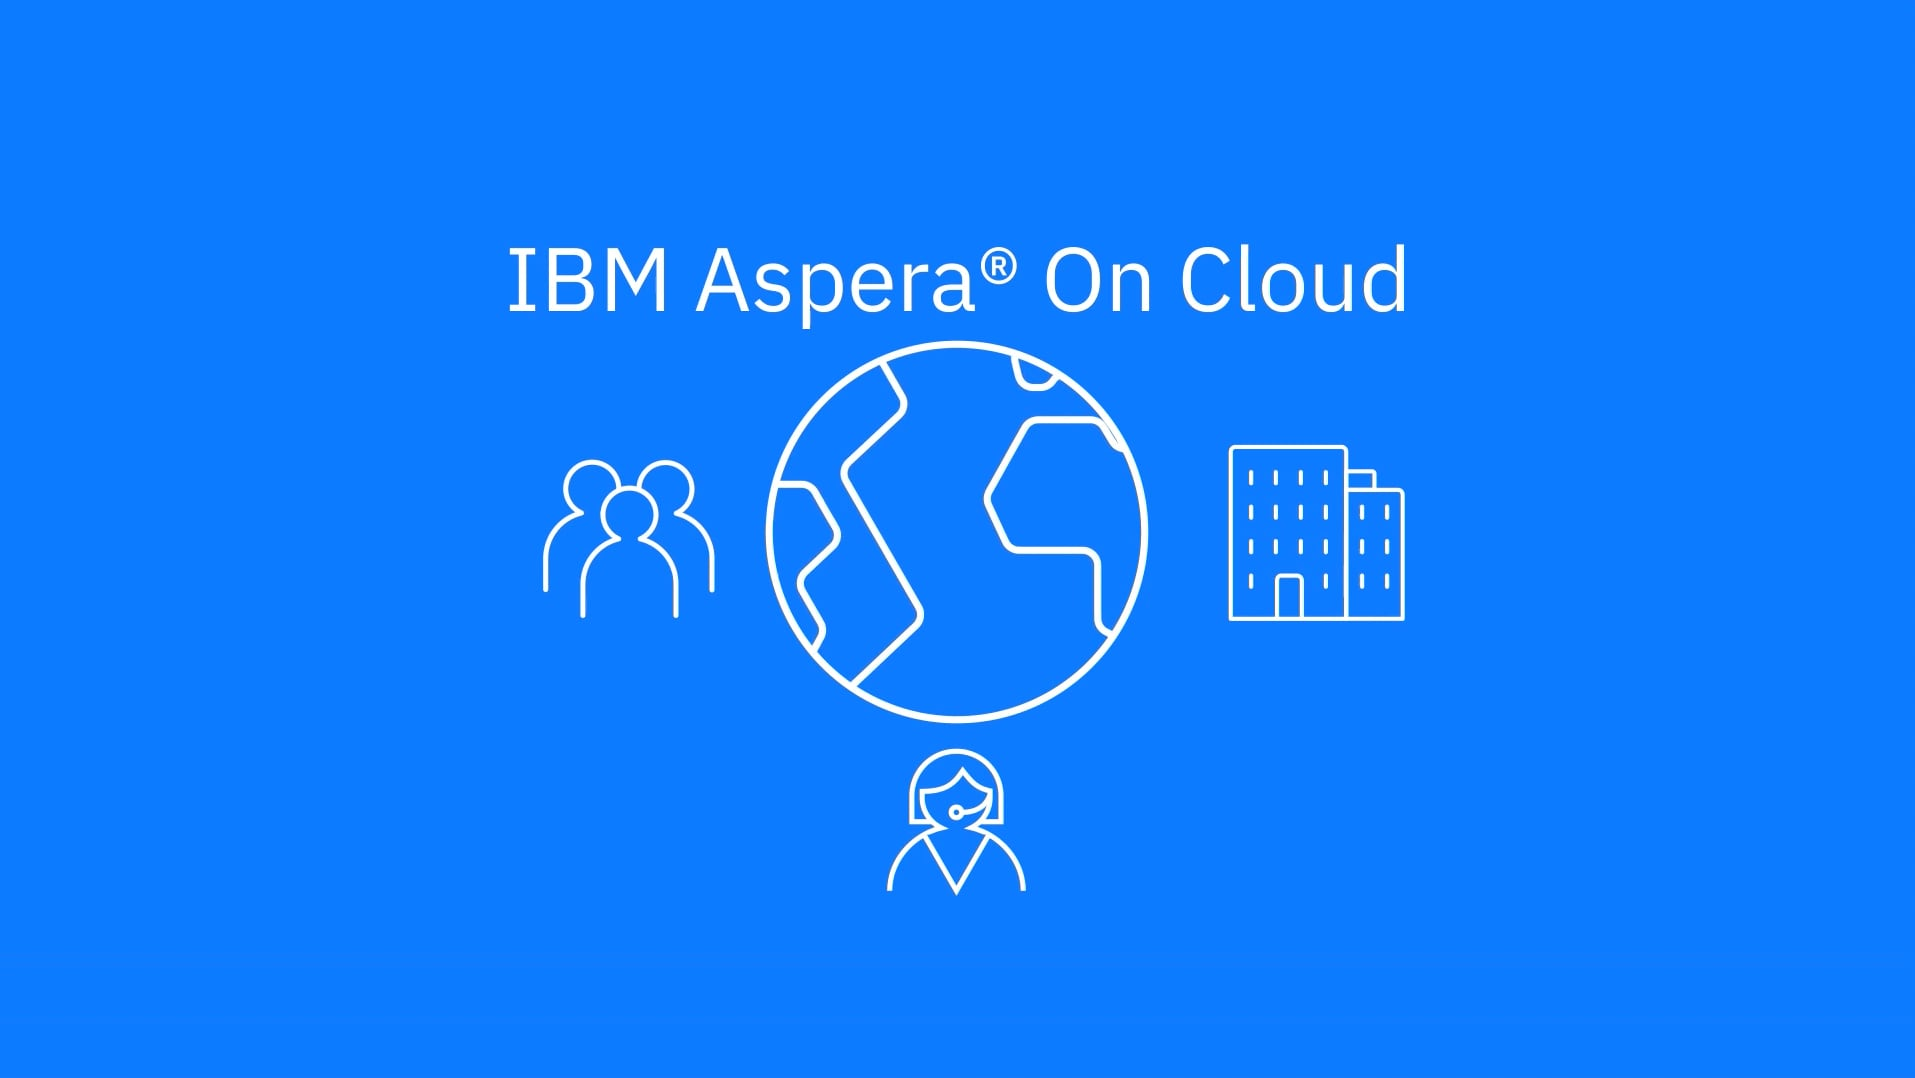 IBM Aspera on Cloud helps organizations quickly move data of all sizes